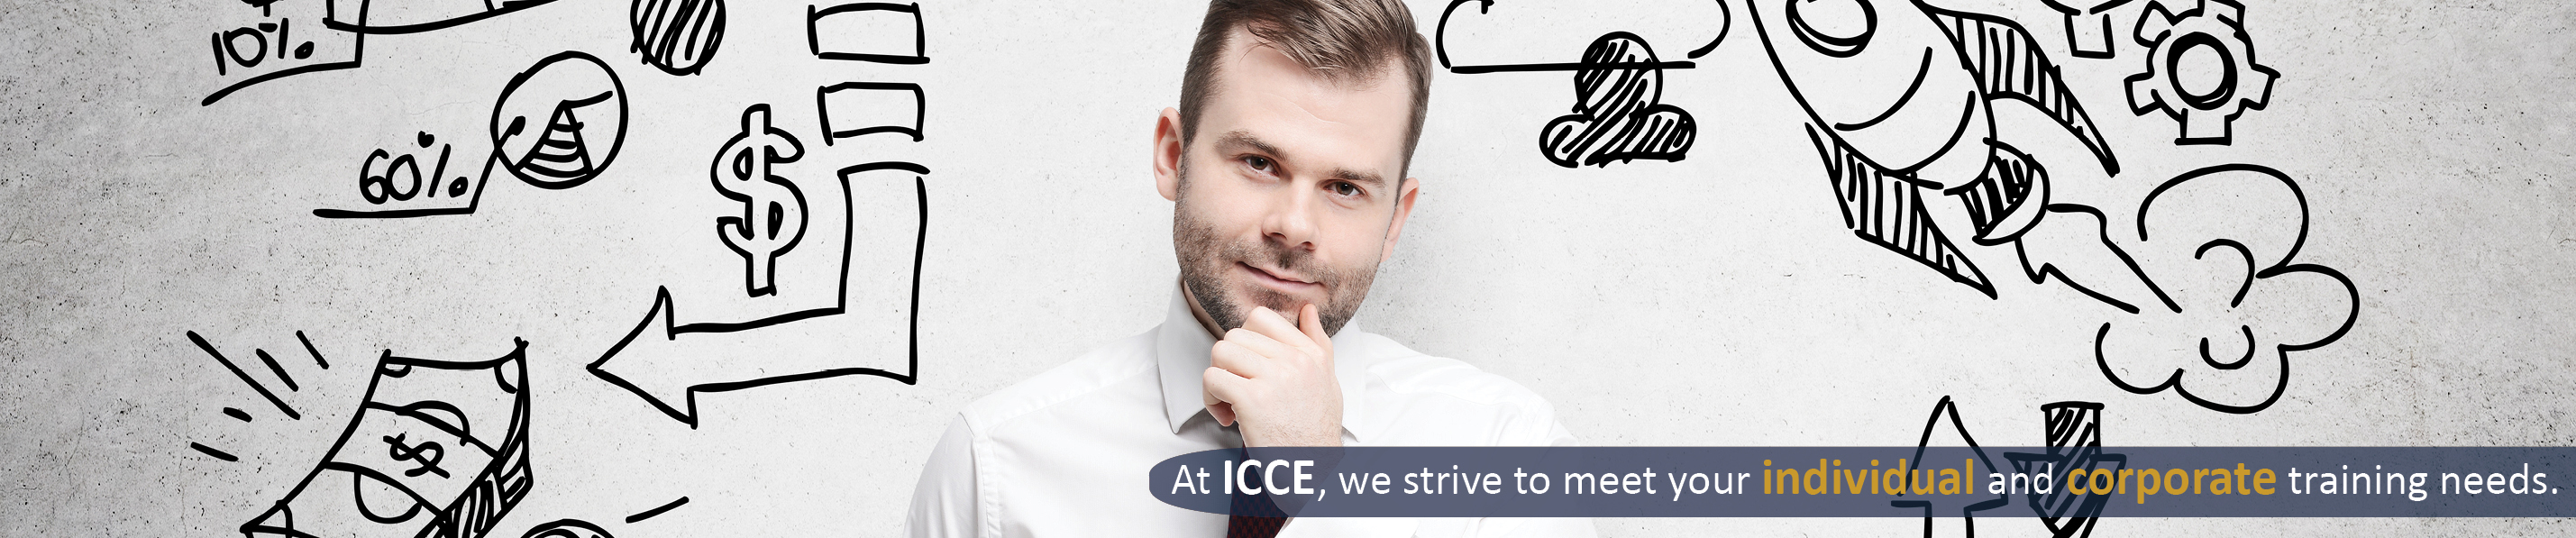 Hccs institute for corporate and continuing education icce headerindex 1betcityfo Image collections